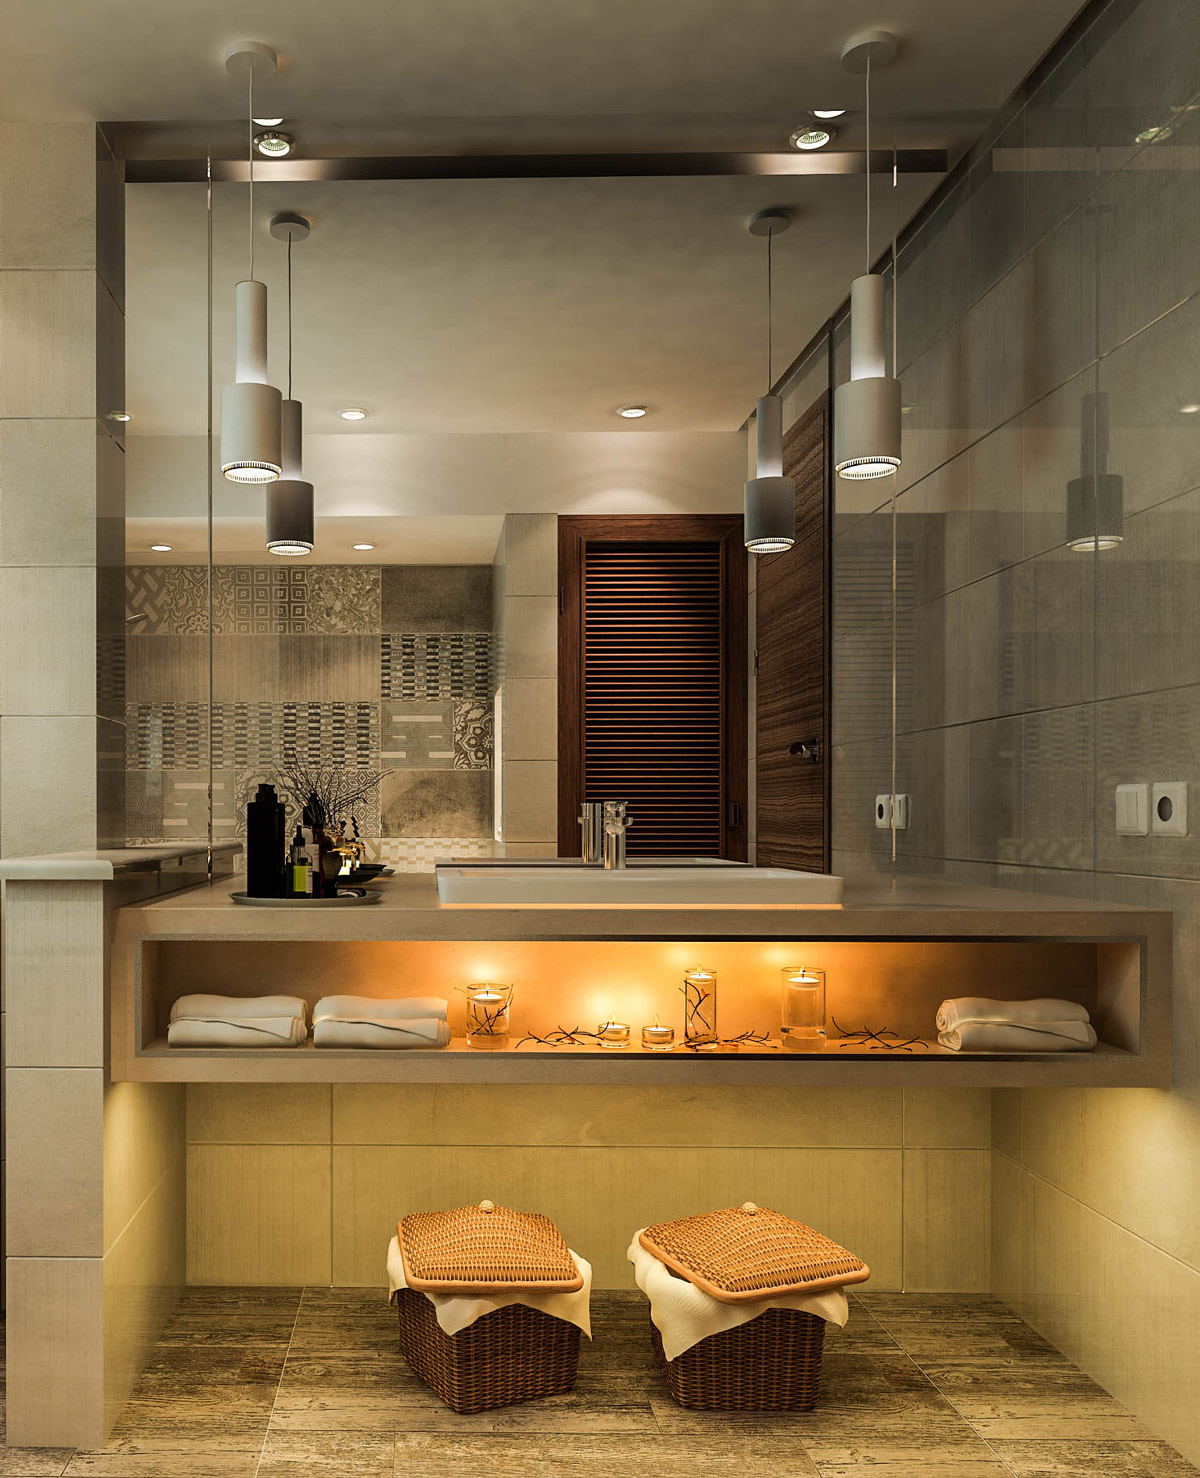 40 Modern Bathroom Vanities That Overflow With Style images 17